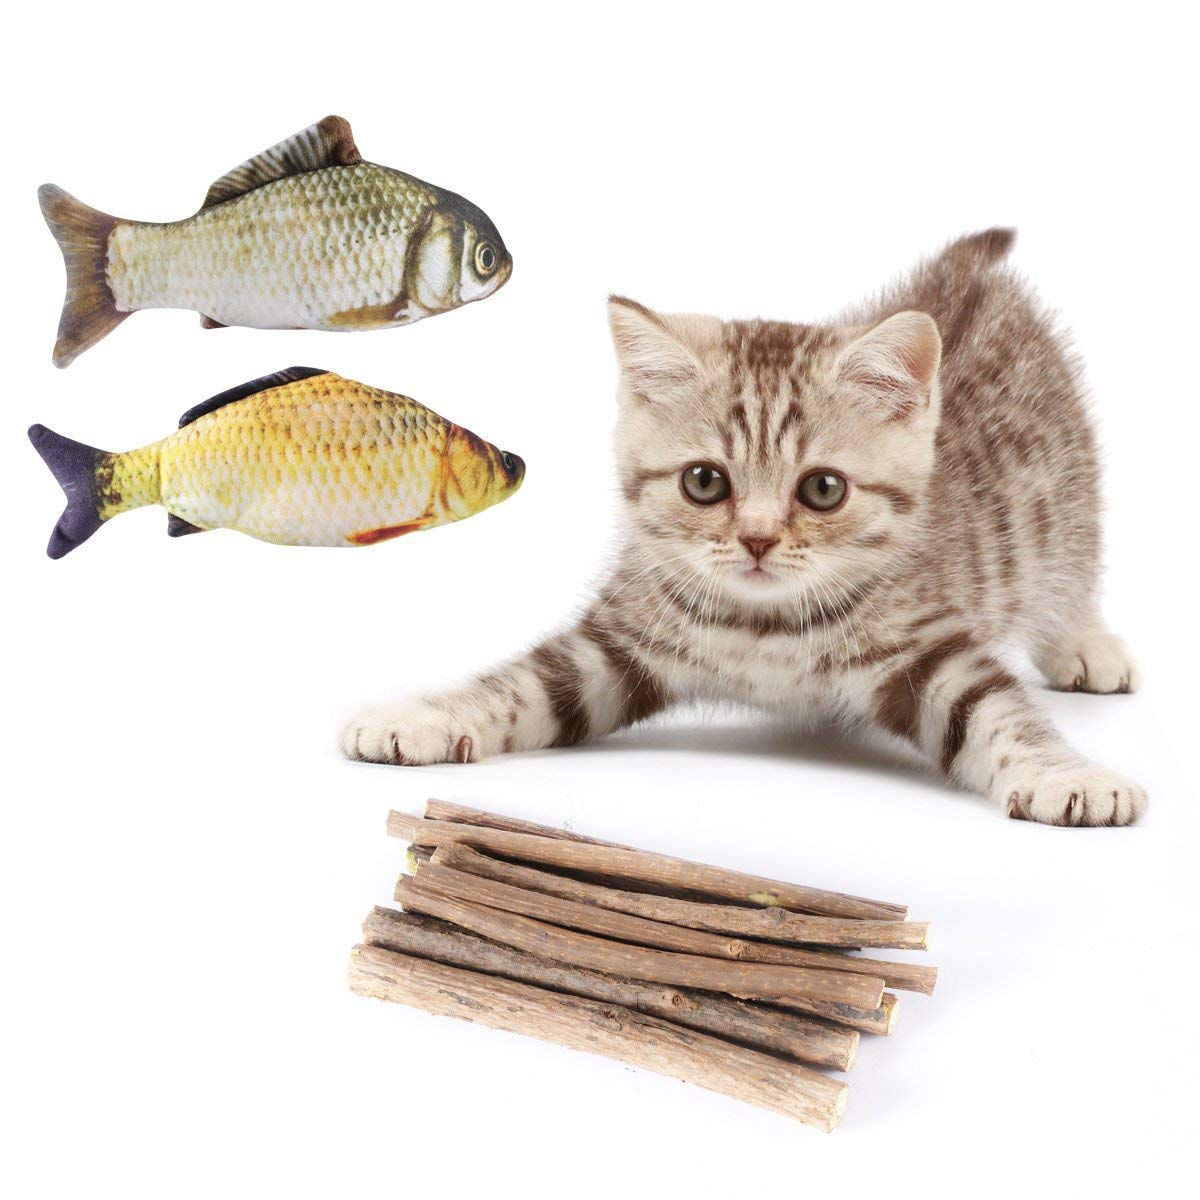 Catnip ToysAieve 10 Pack Catnip Toys for CatsCat Natural Matatabi Chew Sticks Teeth Grinding Chew Toy Cat Molar Toothpaste Stick with 2 Pack Cat Toys Catnip Fish